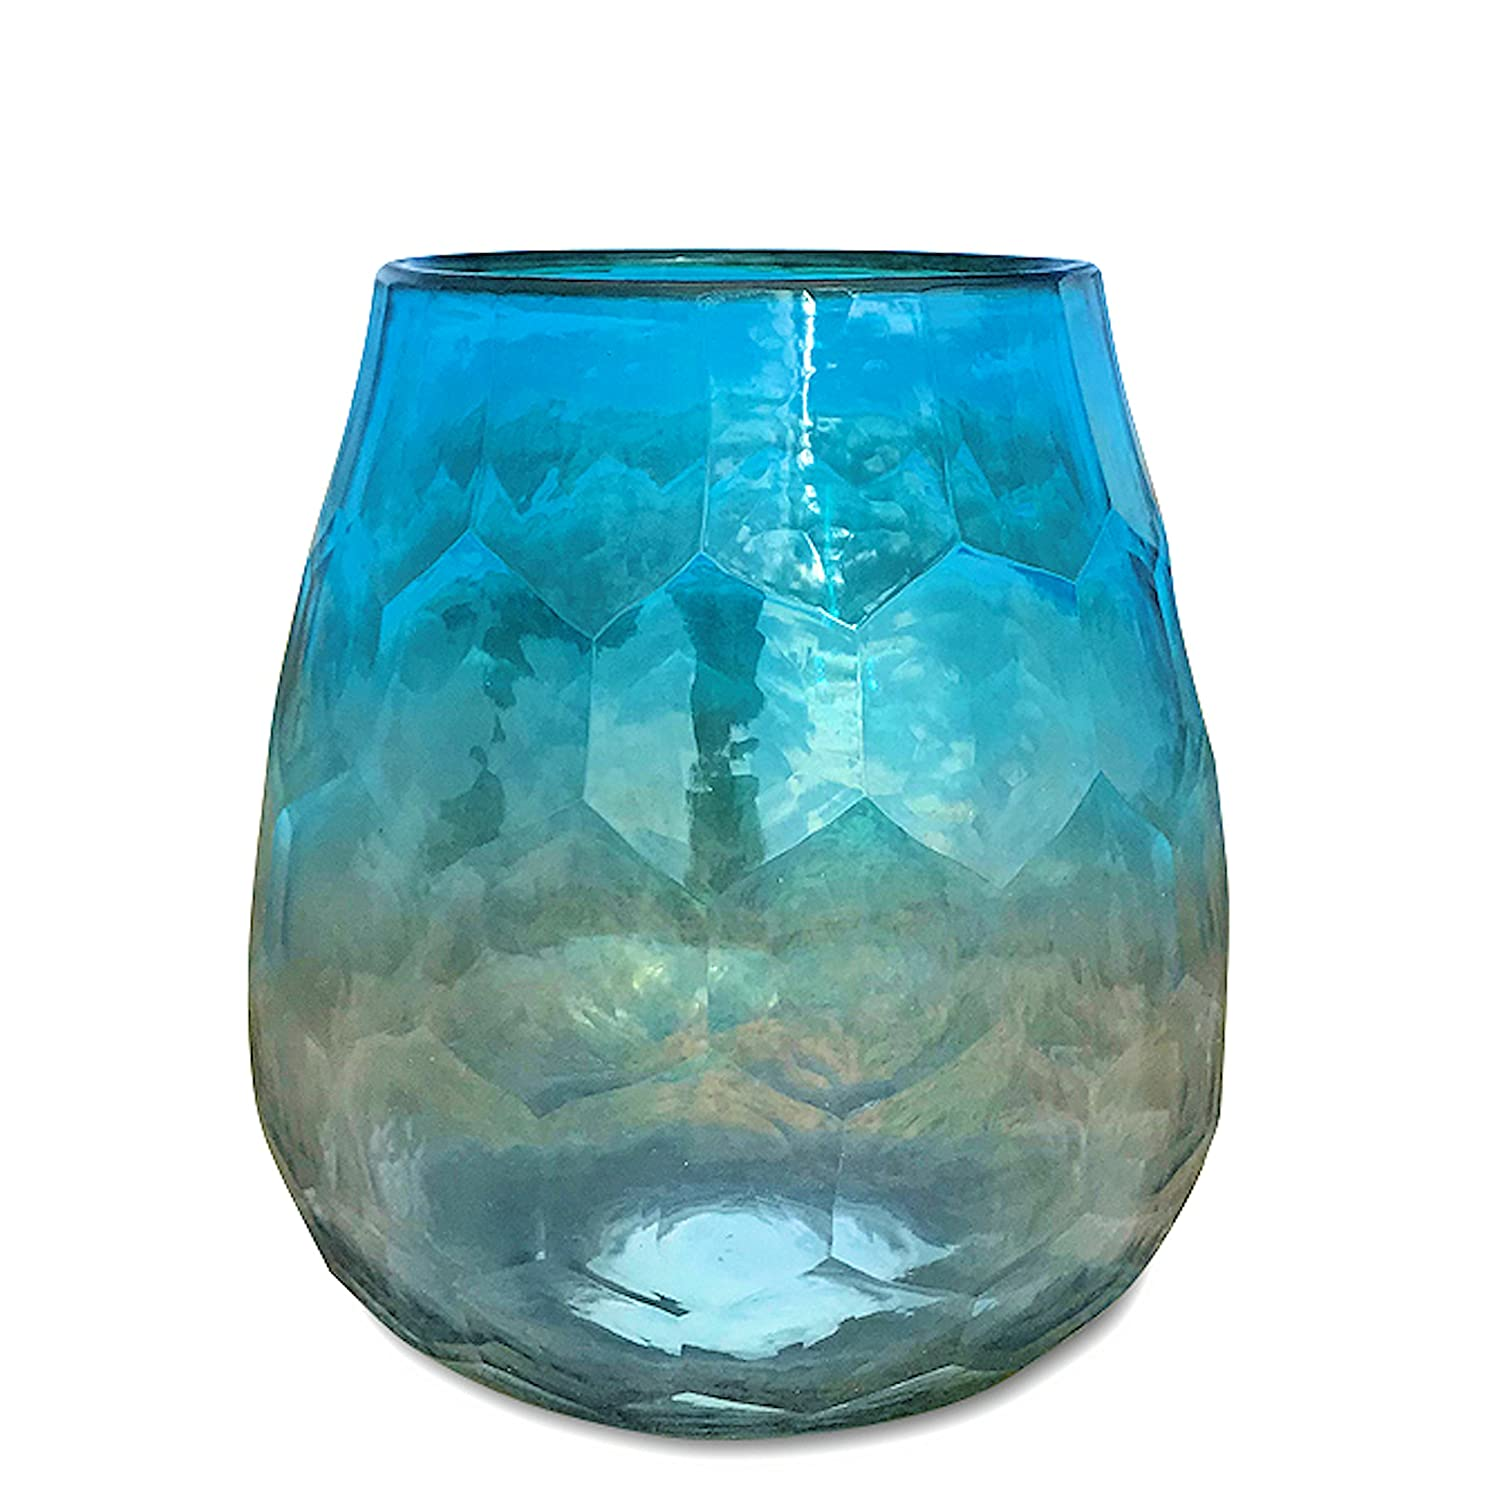 5 1//2 Inches Tall Artisinal Faceted Glass WHW Whole House Worlds Hamptons Pale Aqua Marine Ombre Hurricane Wind-Light Hand Blown and Molded